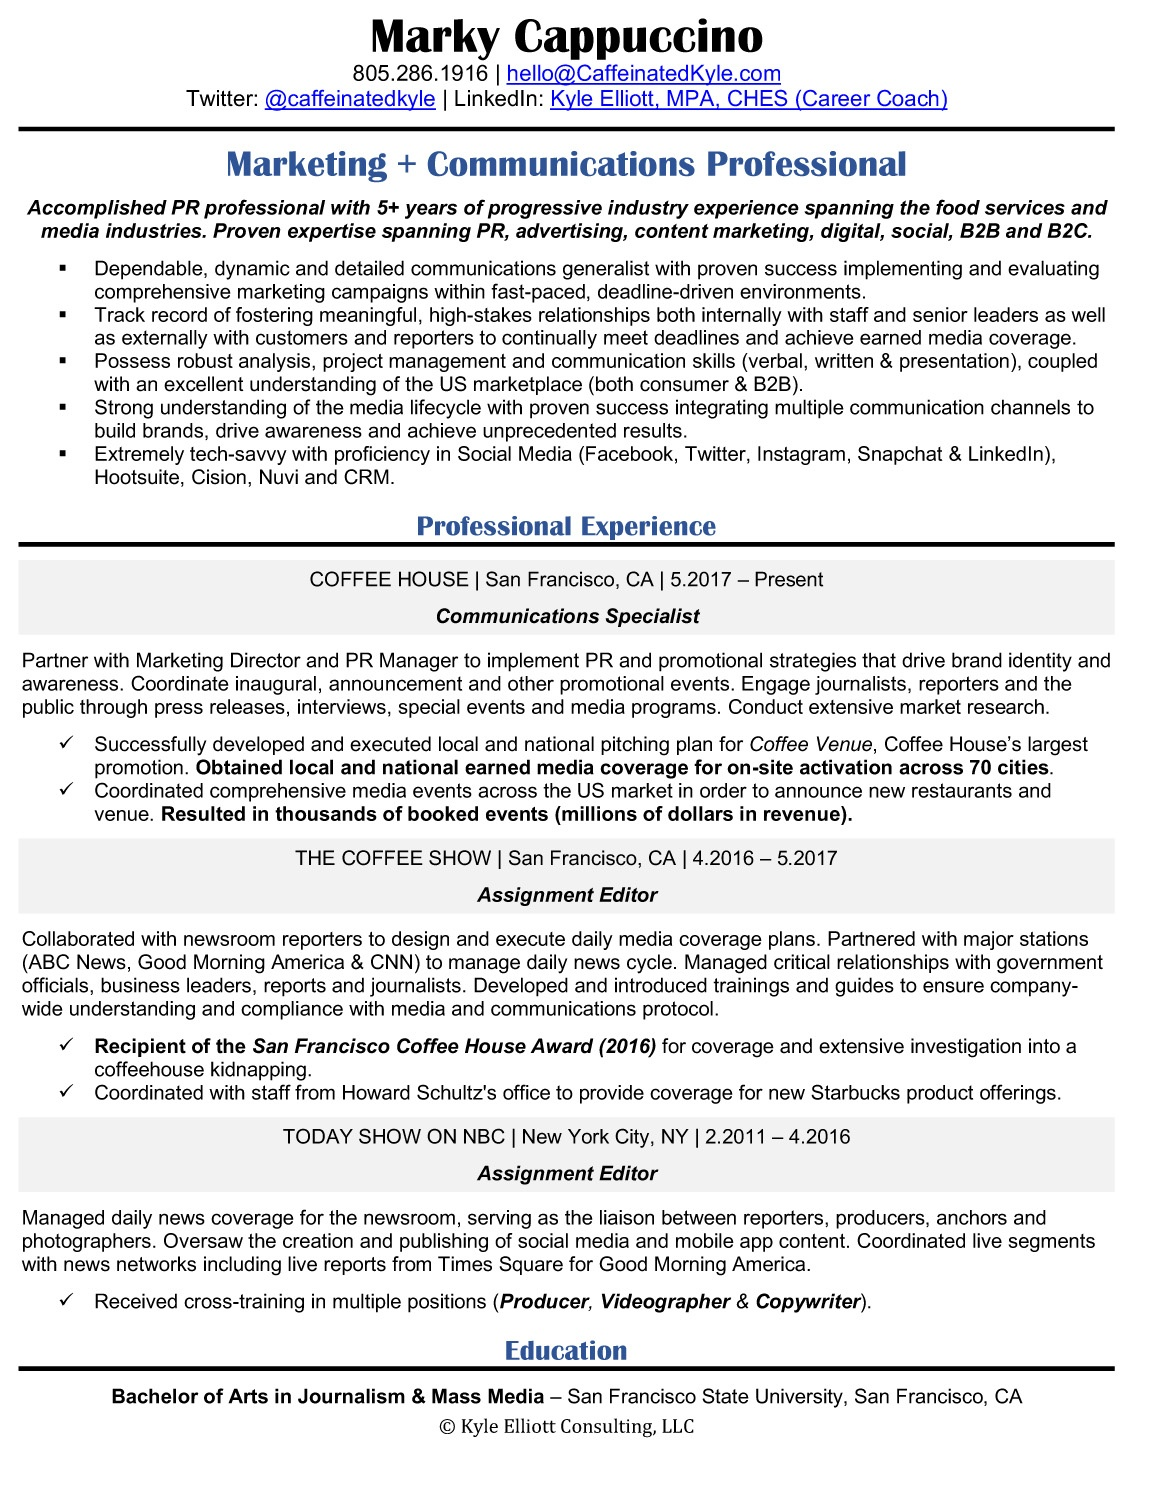 Resume Samples Kyle Elliott Consulting